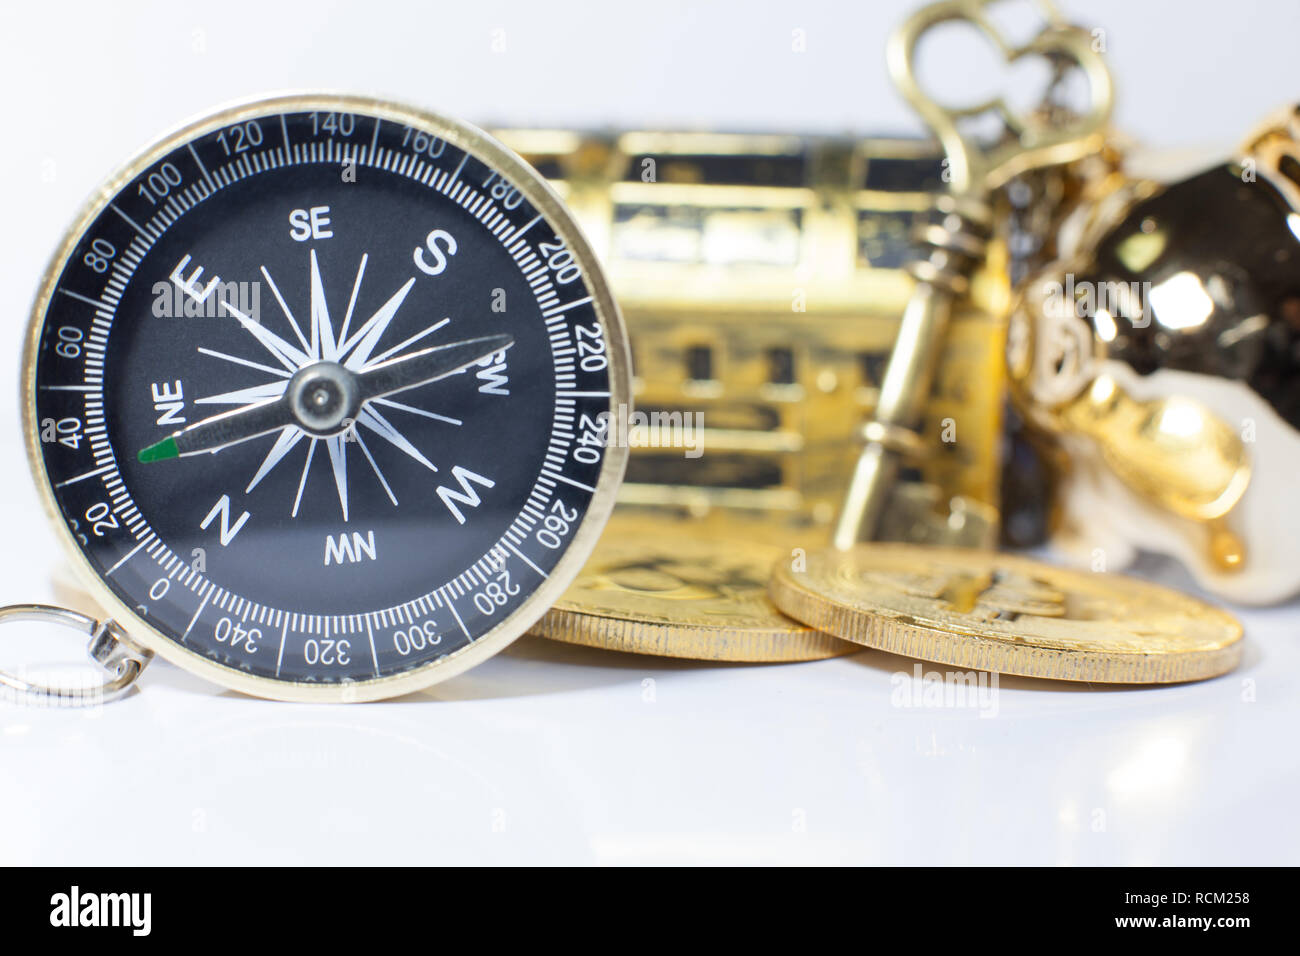 Golden Compass guiding business investment, stock, money trading in right direction to wealth, rich, success, fortune. Vision, Key, Positioning, Strat Stock Photo